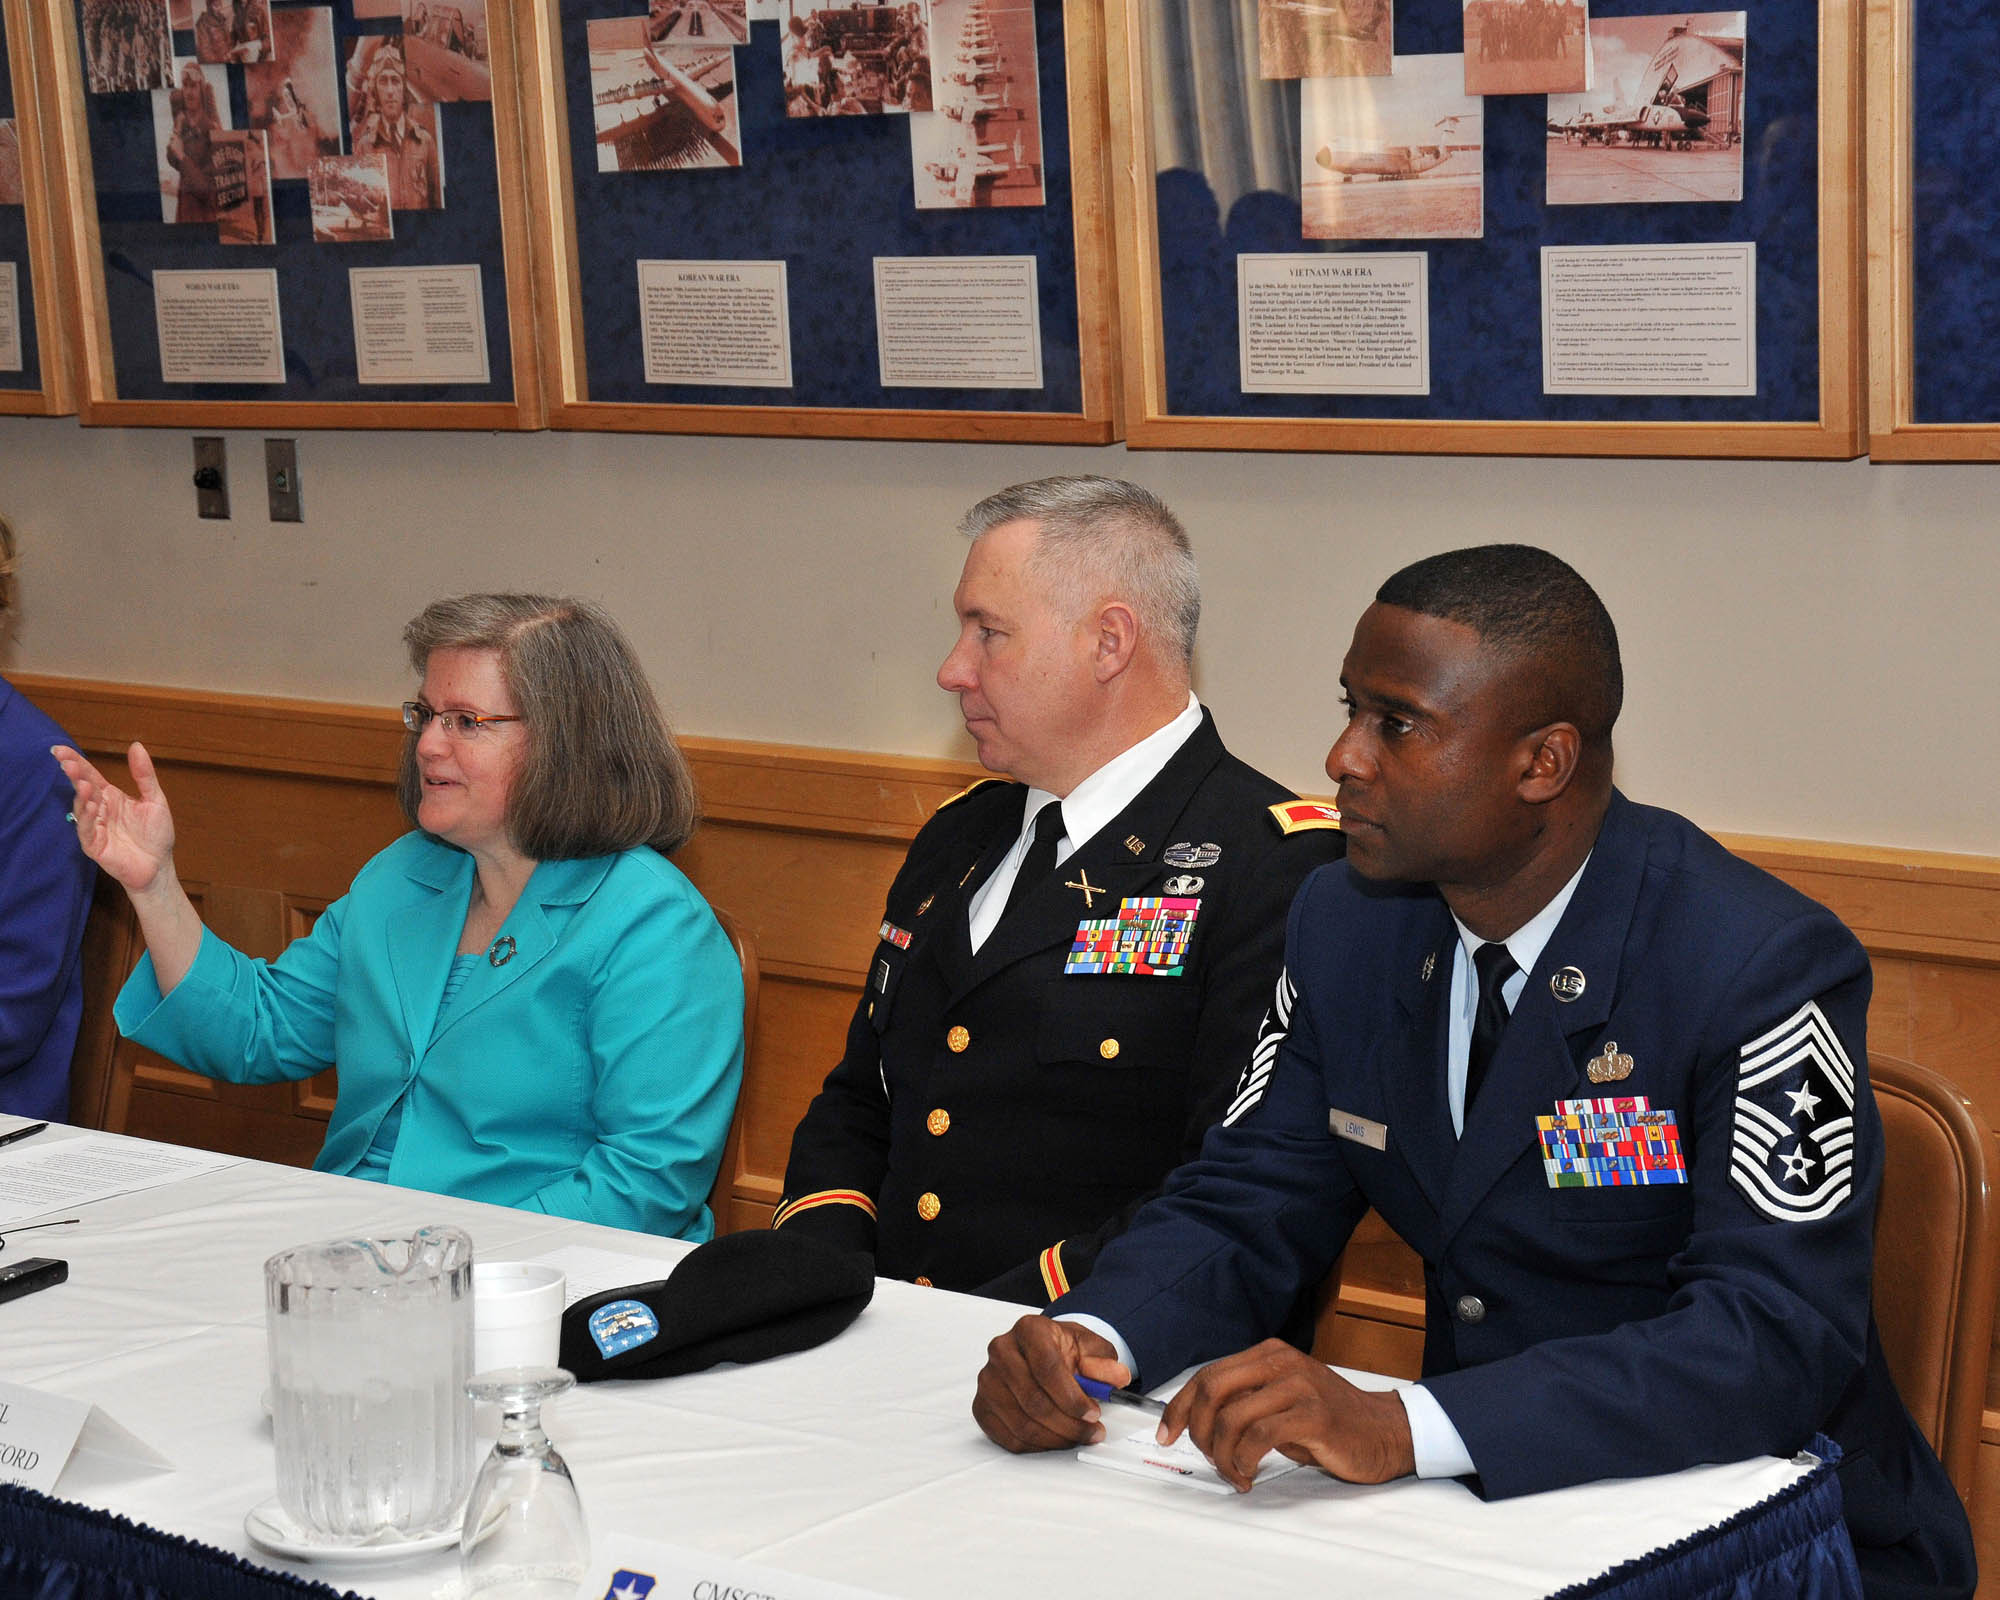 Joint base san antonio news photos - Office of the consumer protection board ...